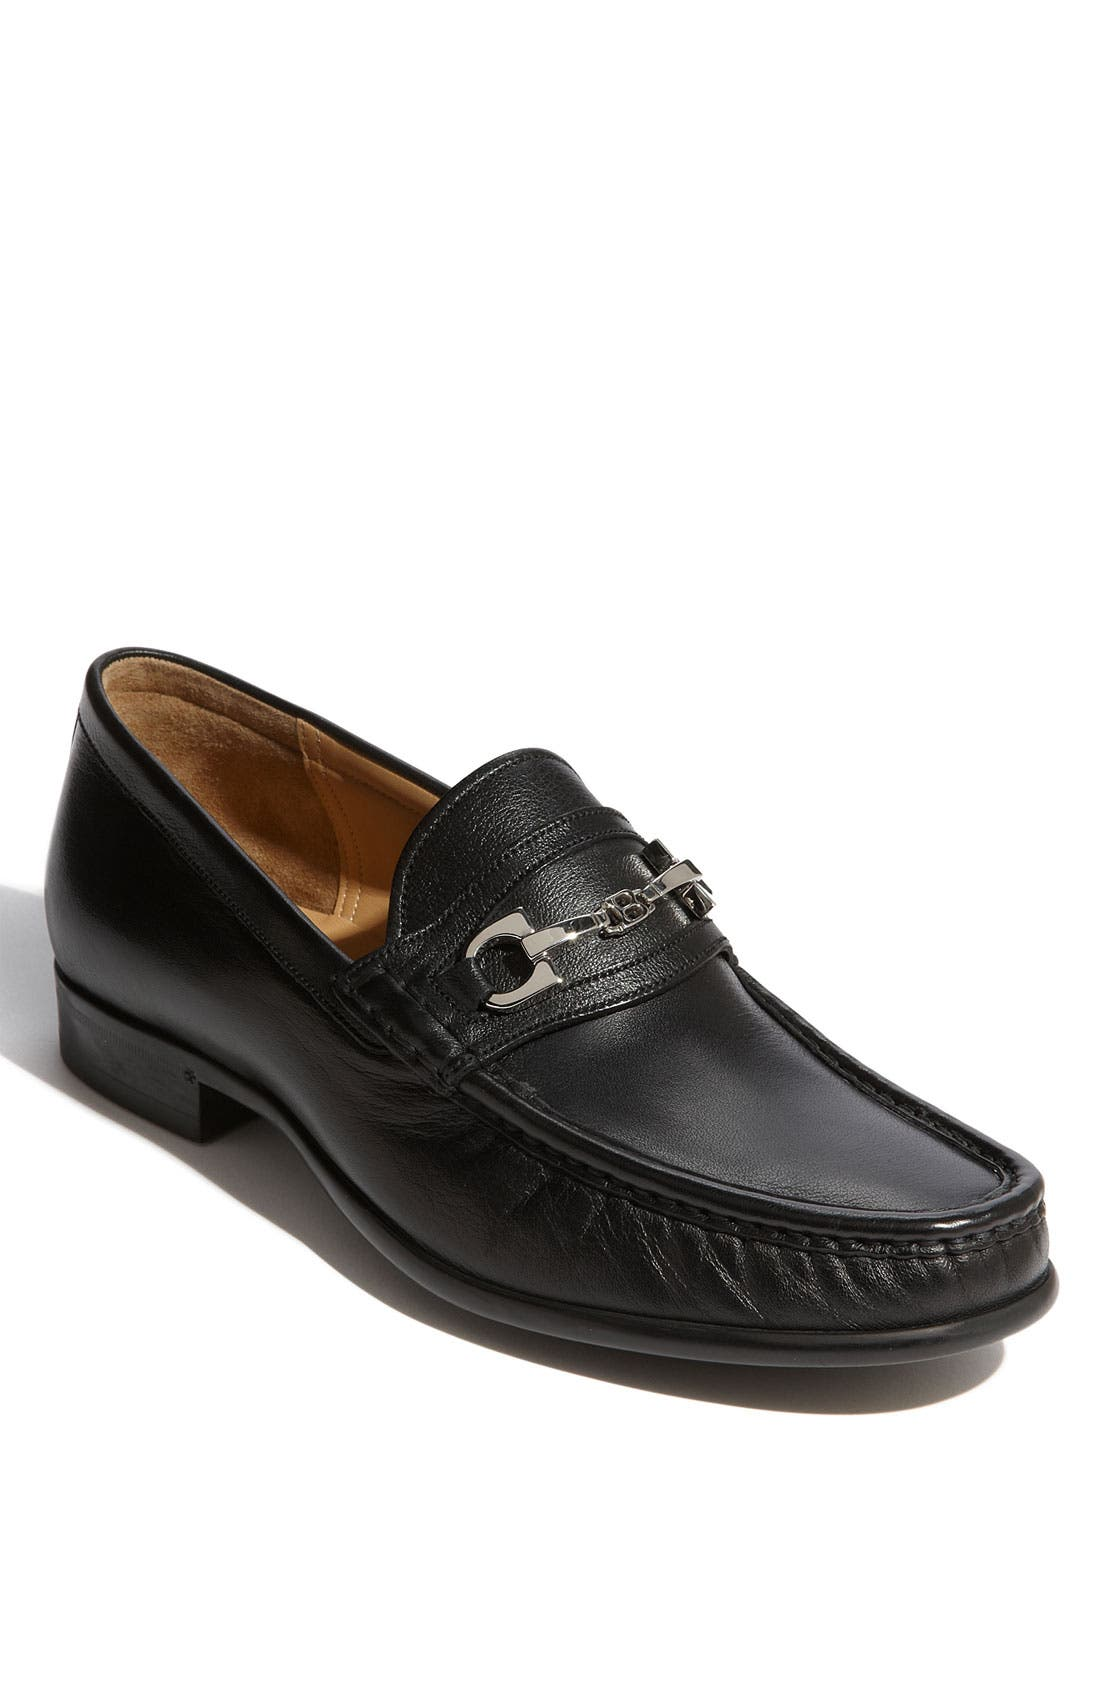 Alternate Image 1 Selected - Bally 'Corman' Loafer